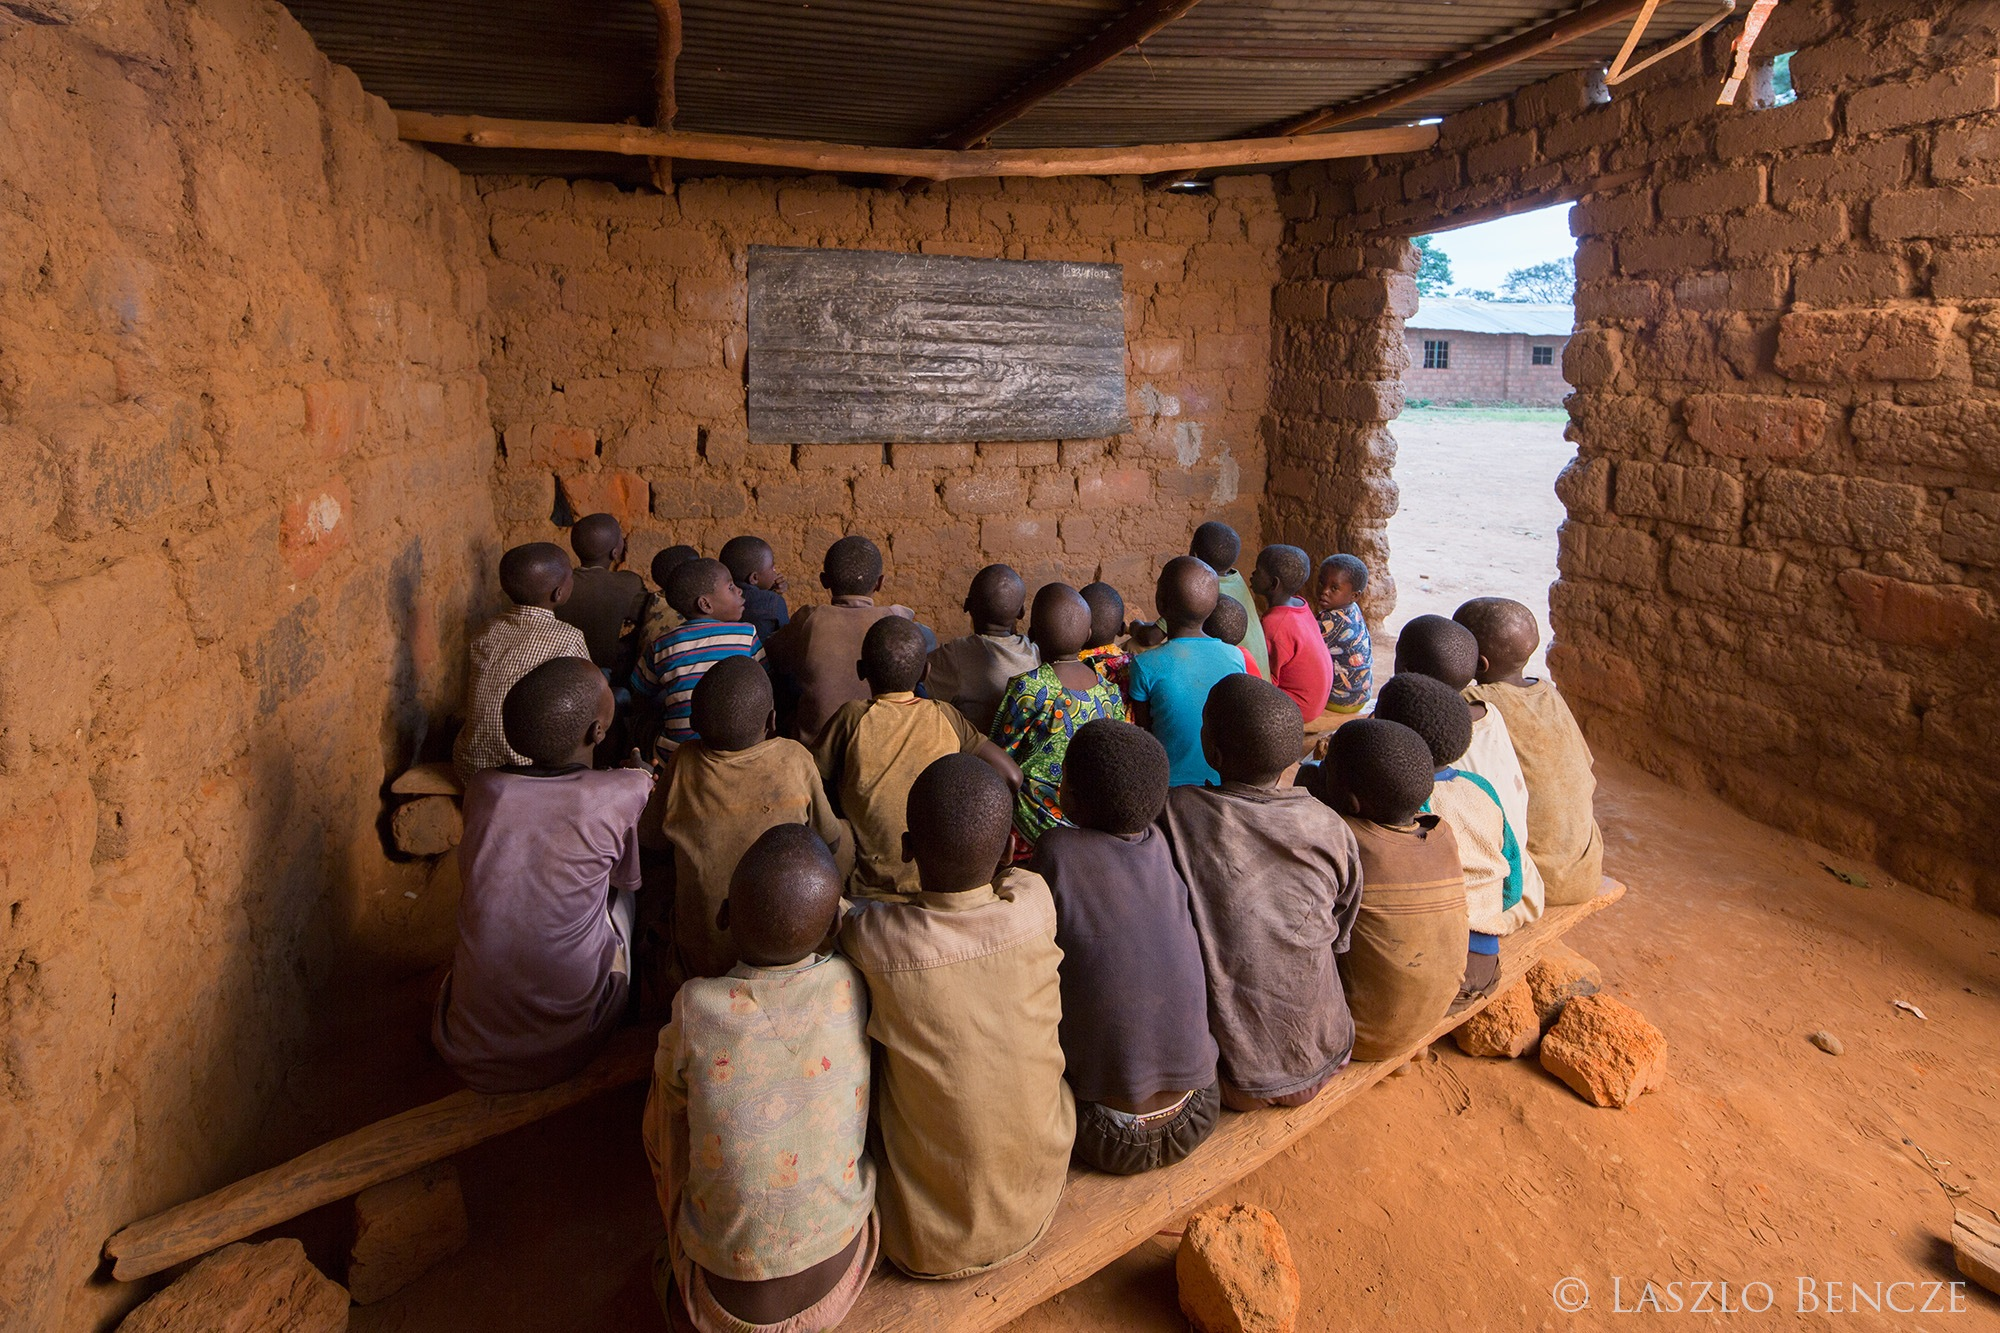 Traditional School Room, DRC (Congo) by Laszlo Bencze